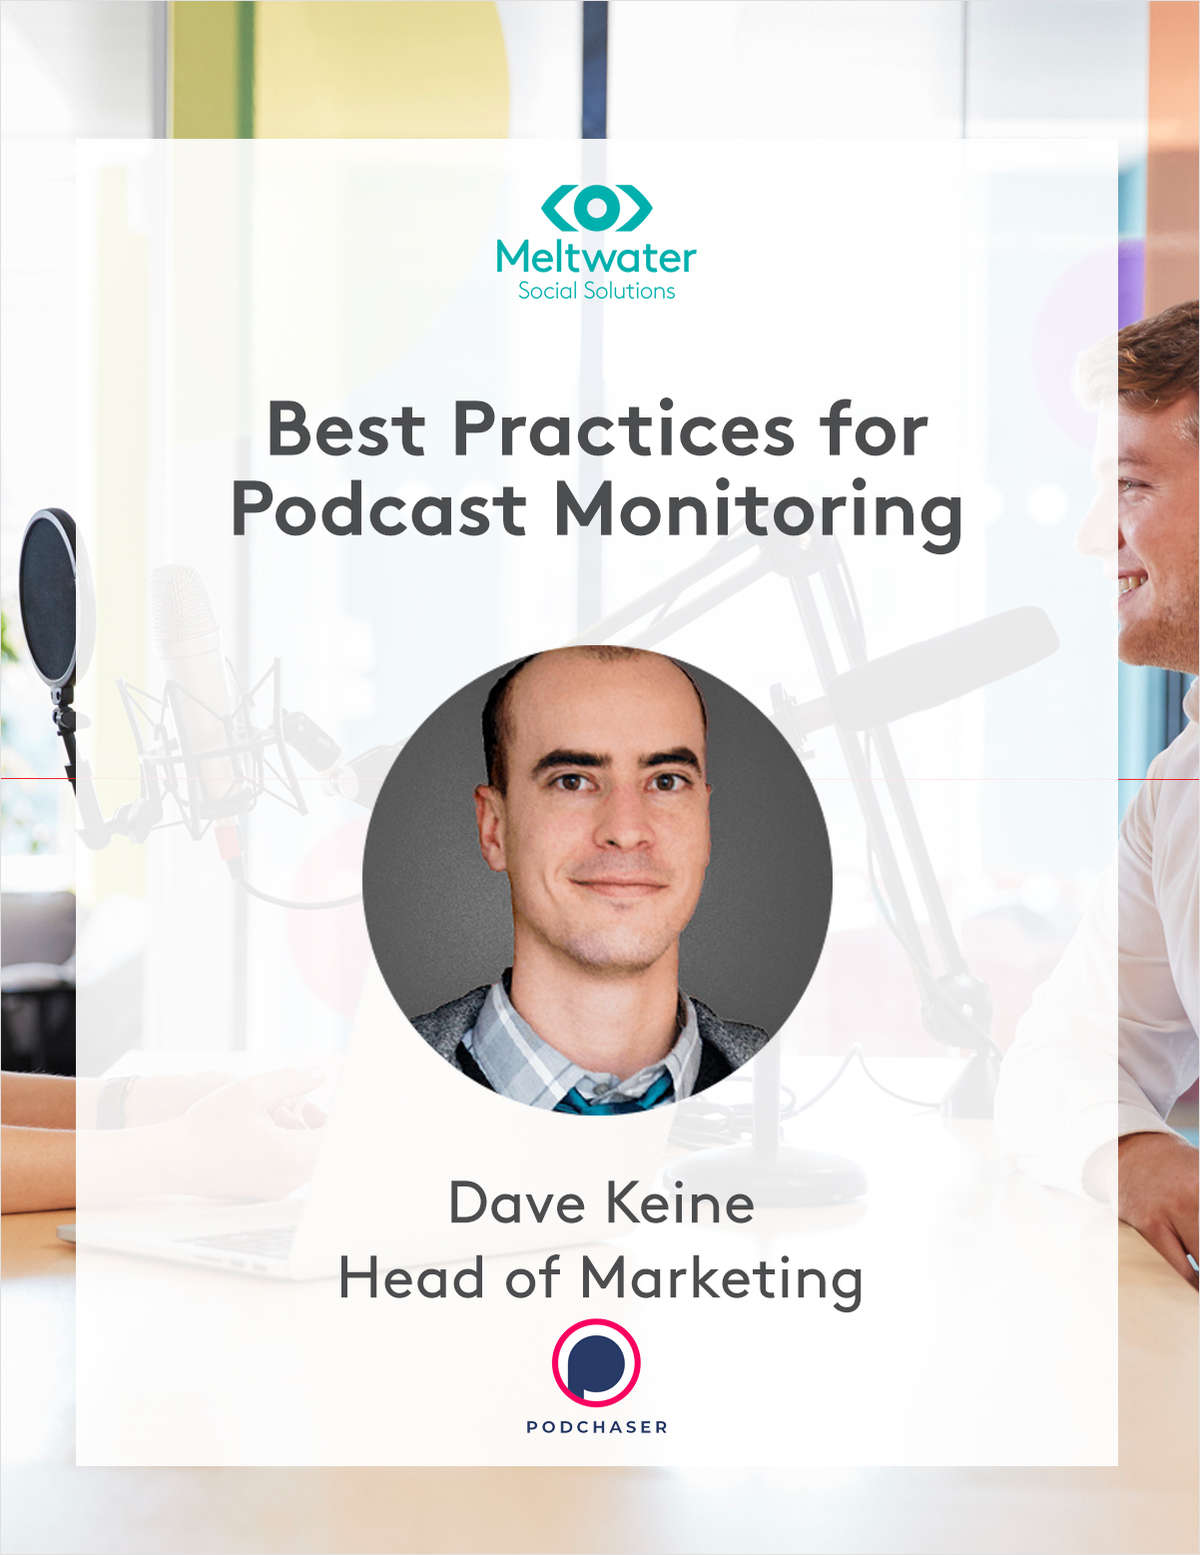 Webinar: Best Practices for Podcast Monitoring